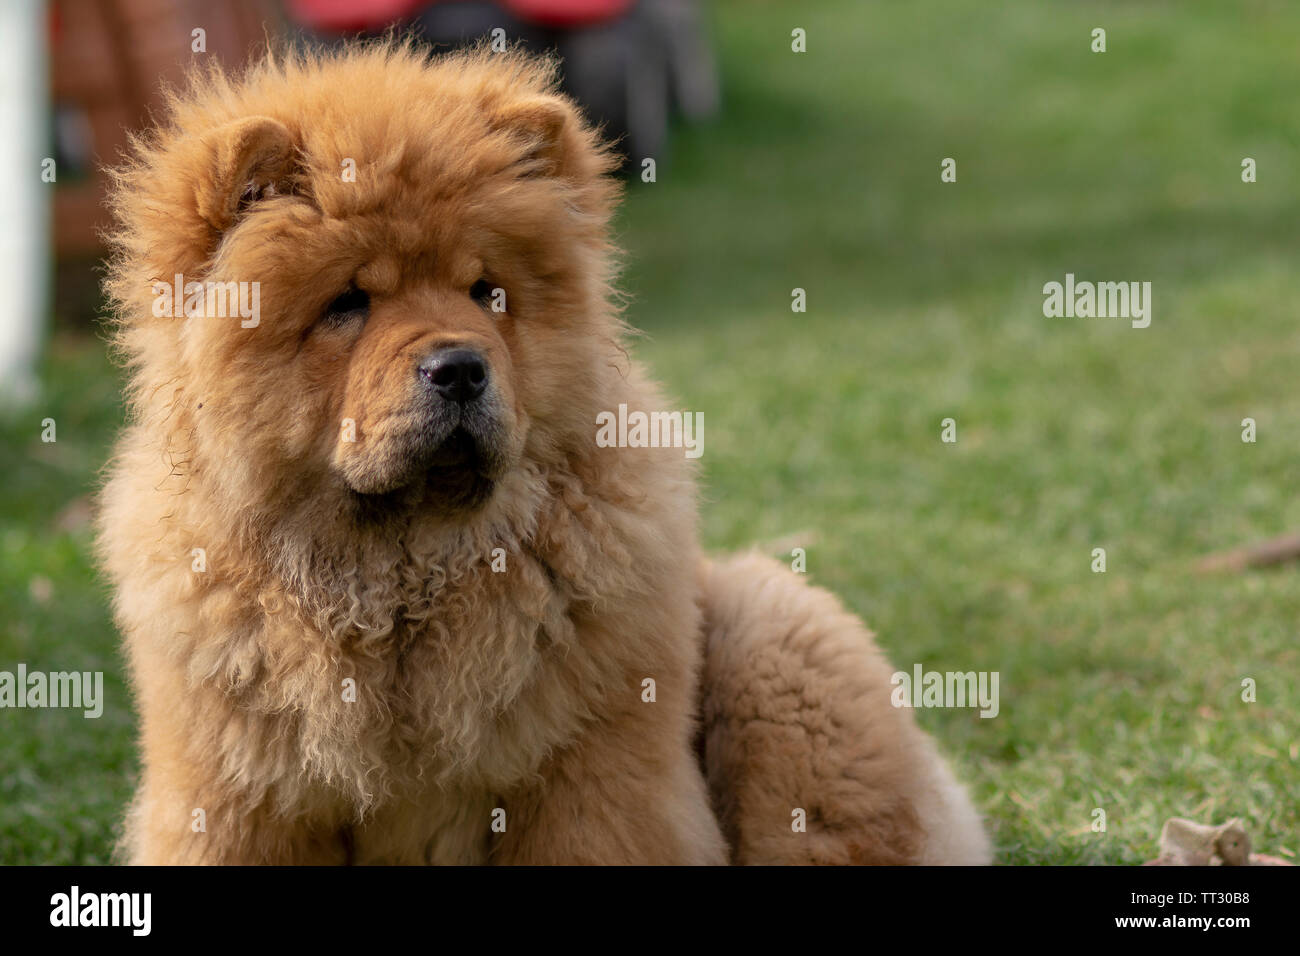 Chow Chow Stock Photos & Chow Chow Stock Images - Alamy